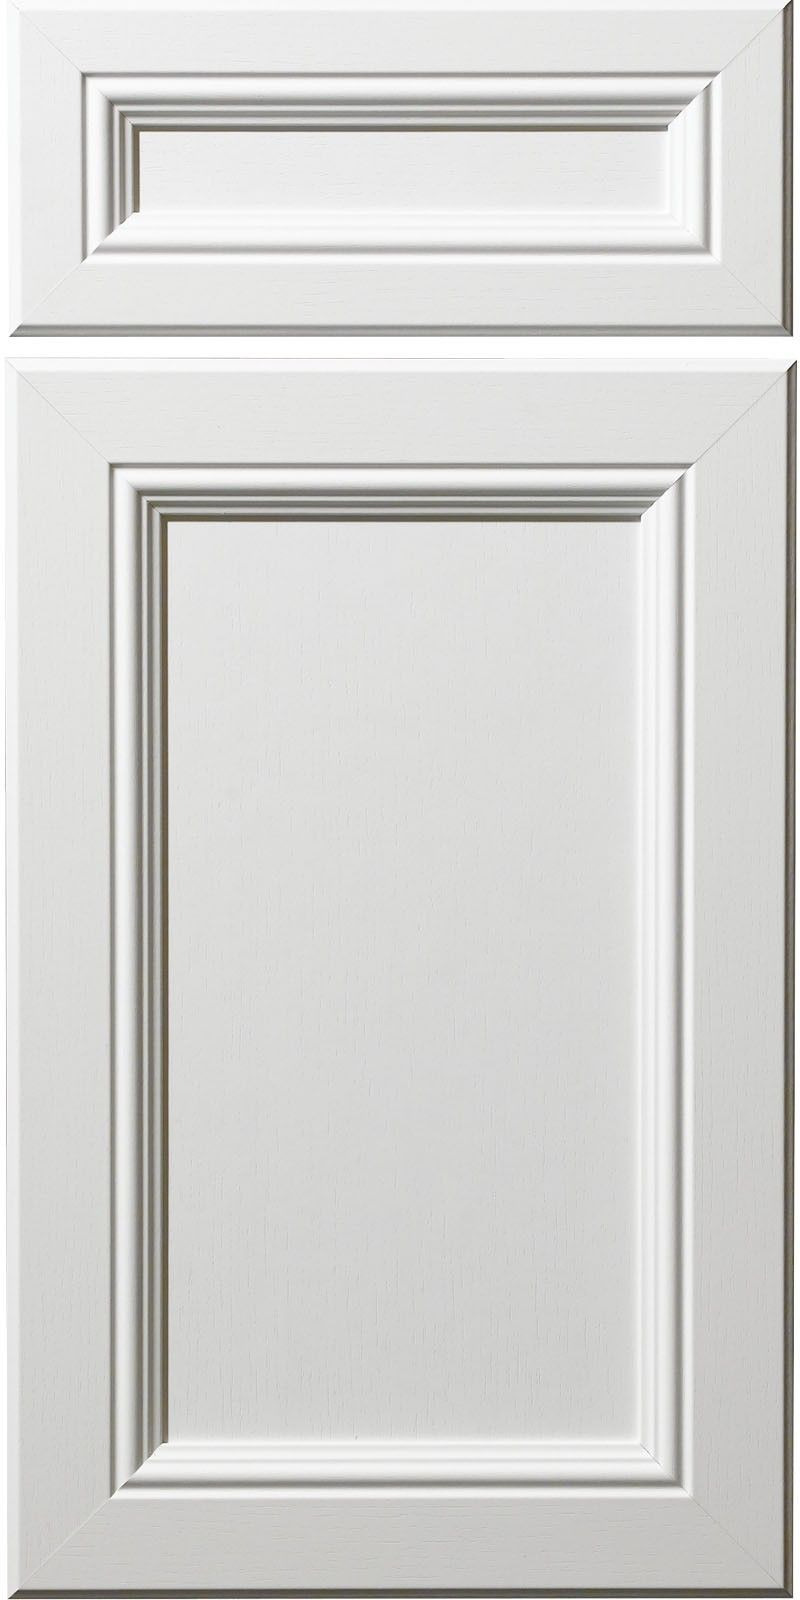 Recessed Cabinet Doors Lovely Recessed Panel Construction